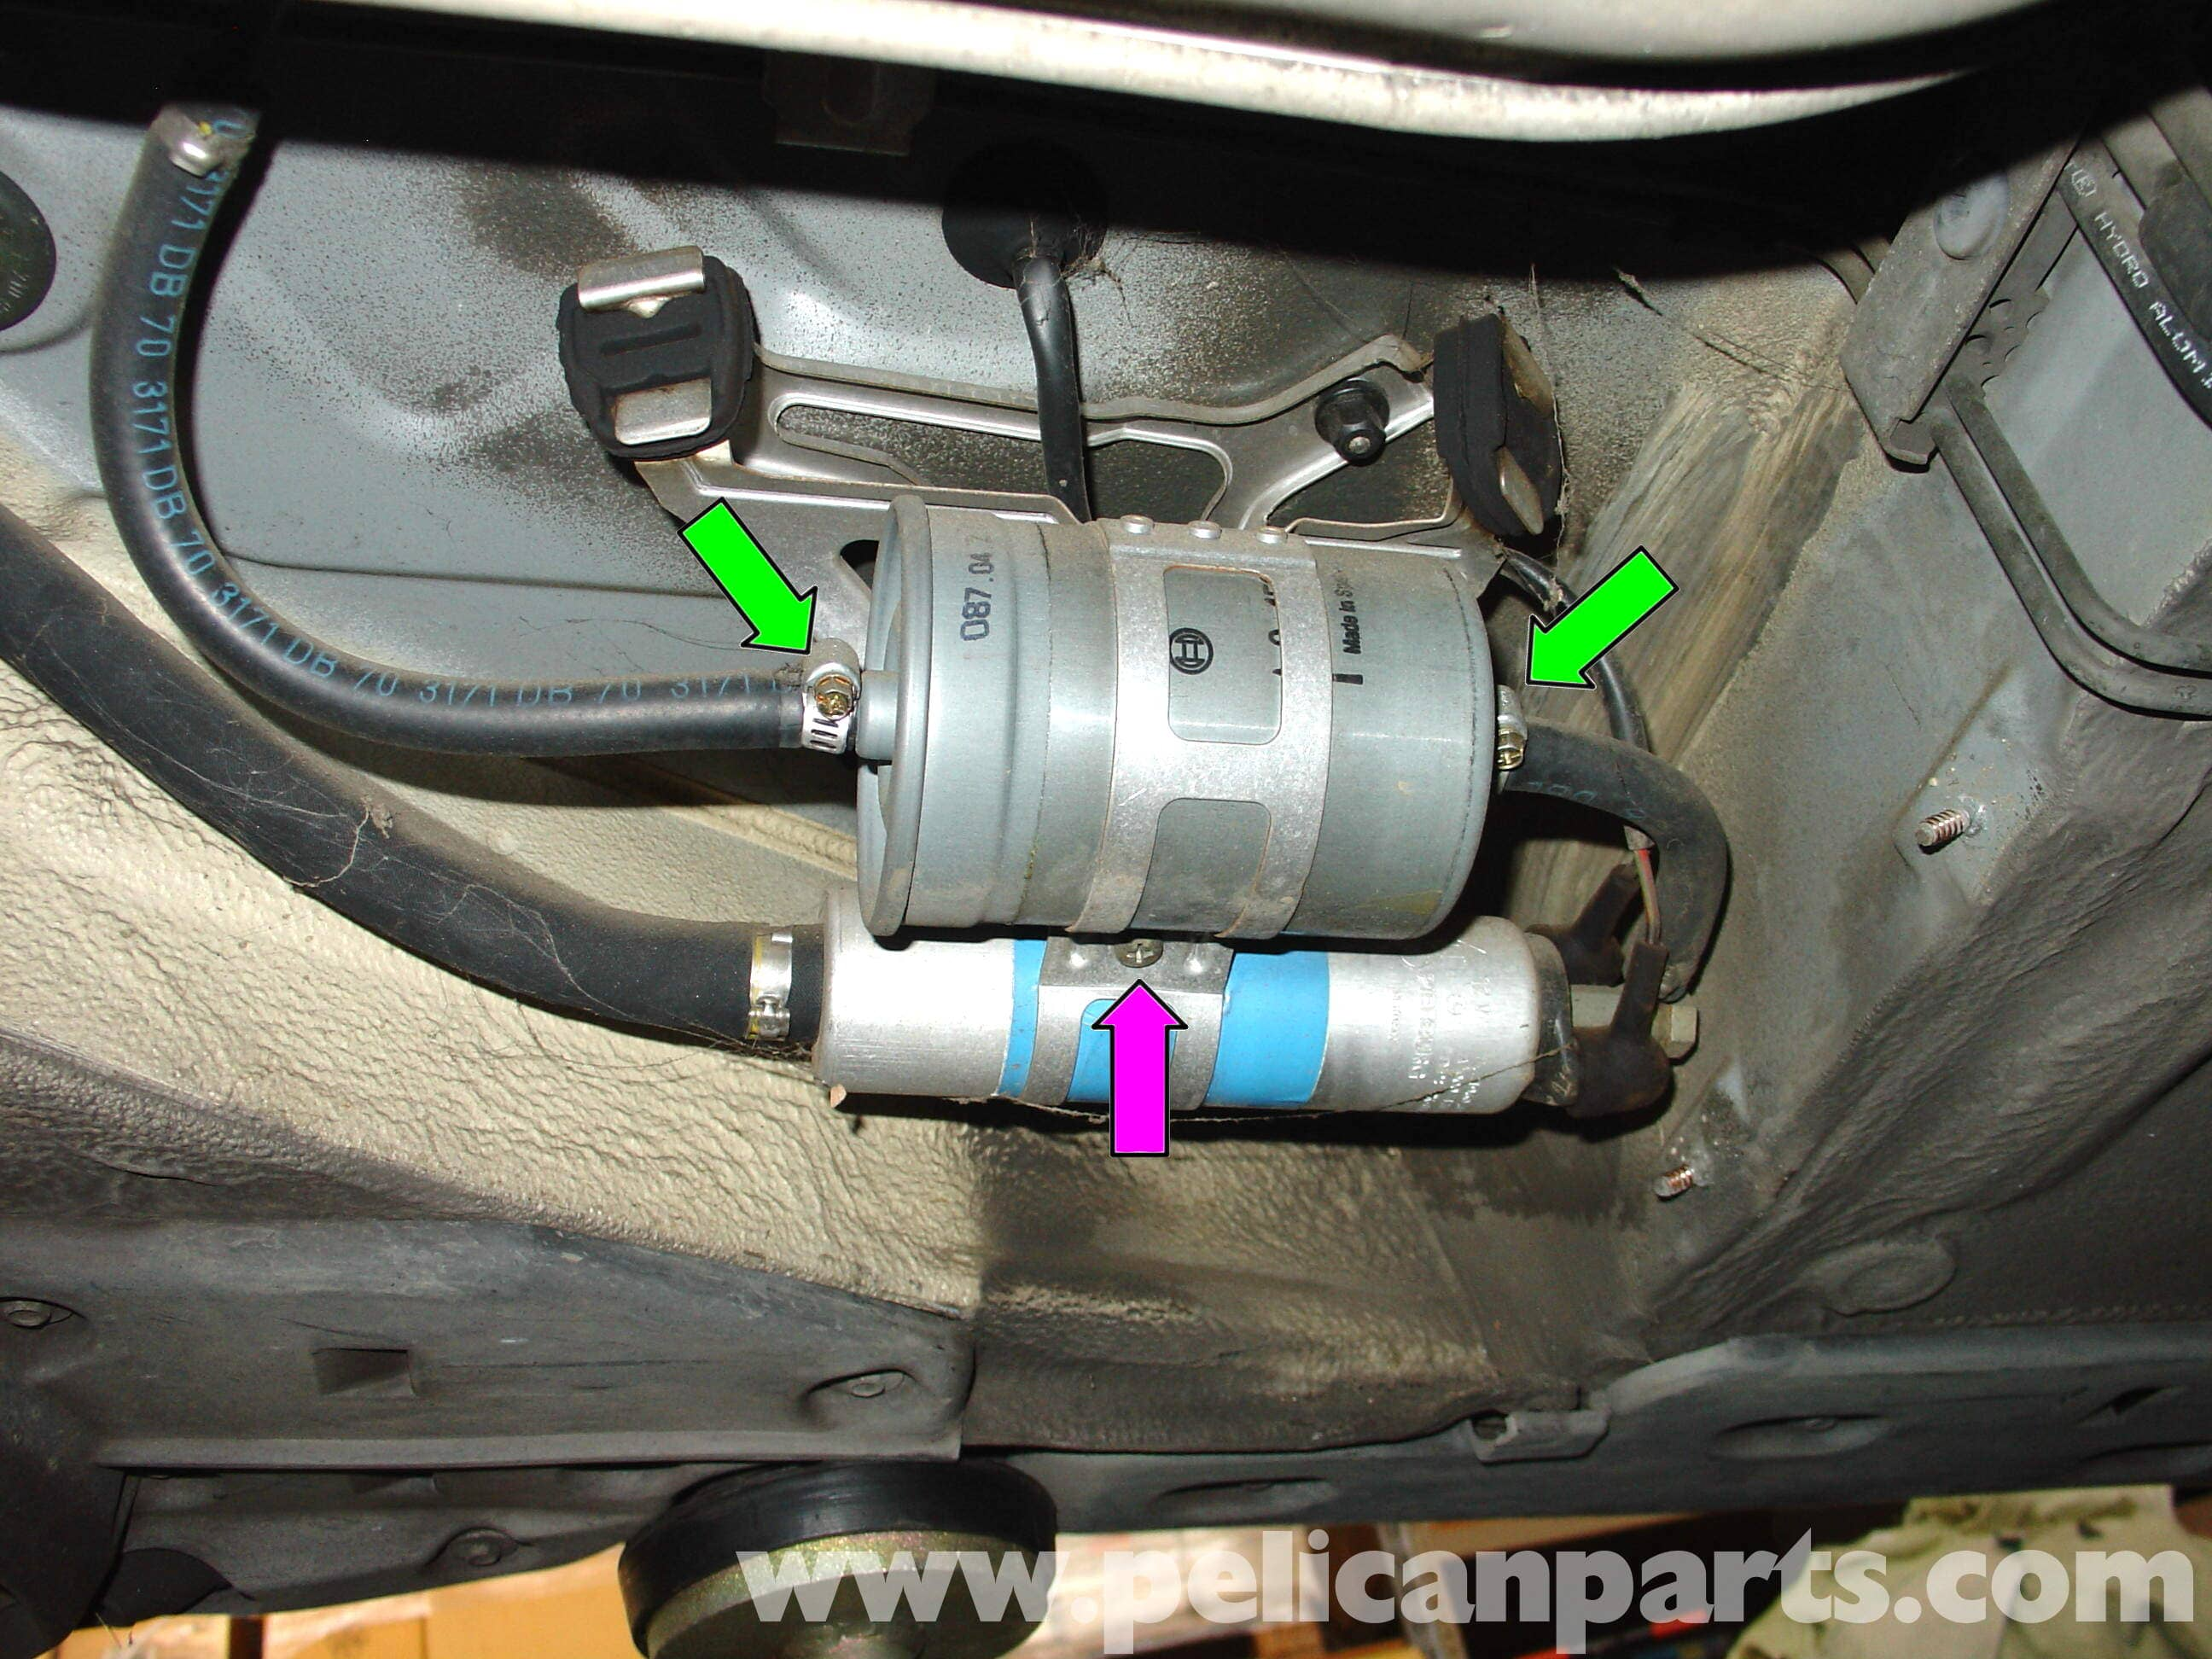 1995 Dodge Ram 1500 Fuel Filter Location - Auto Electrical Wiring ... dodge  caravan power steering filter location. Large Image | Extra-Large Image